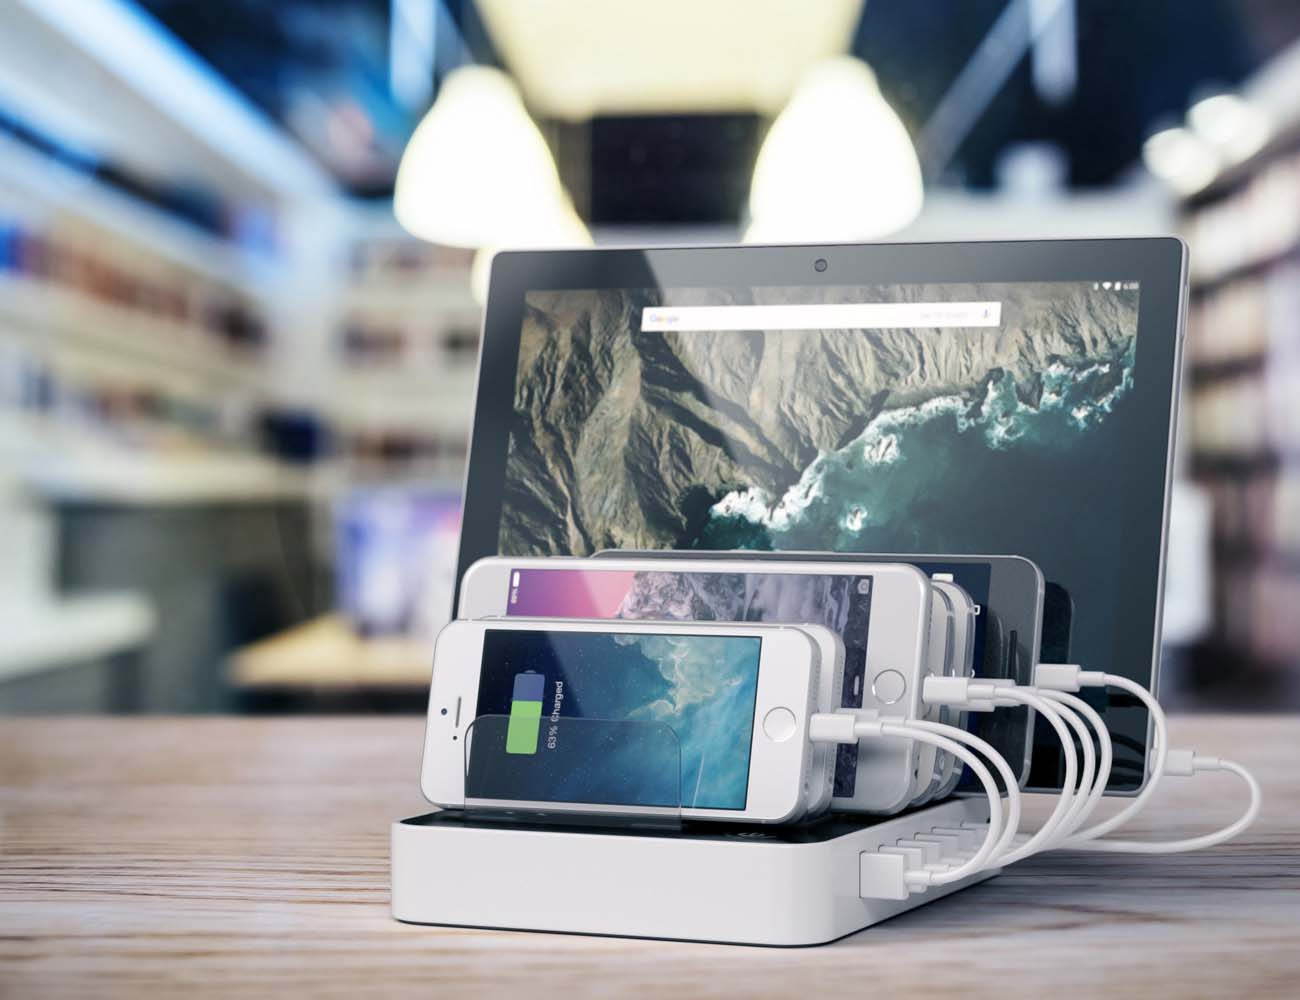 7-Port USB Charging Station Dock